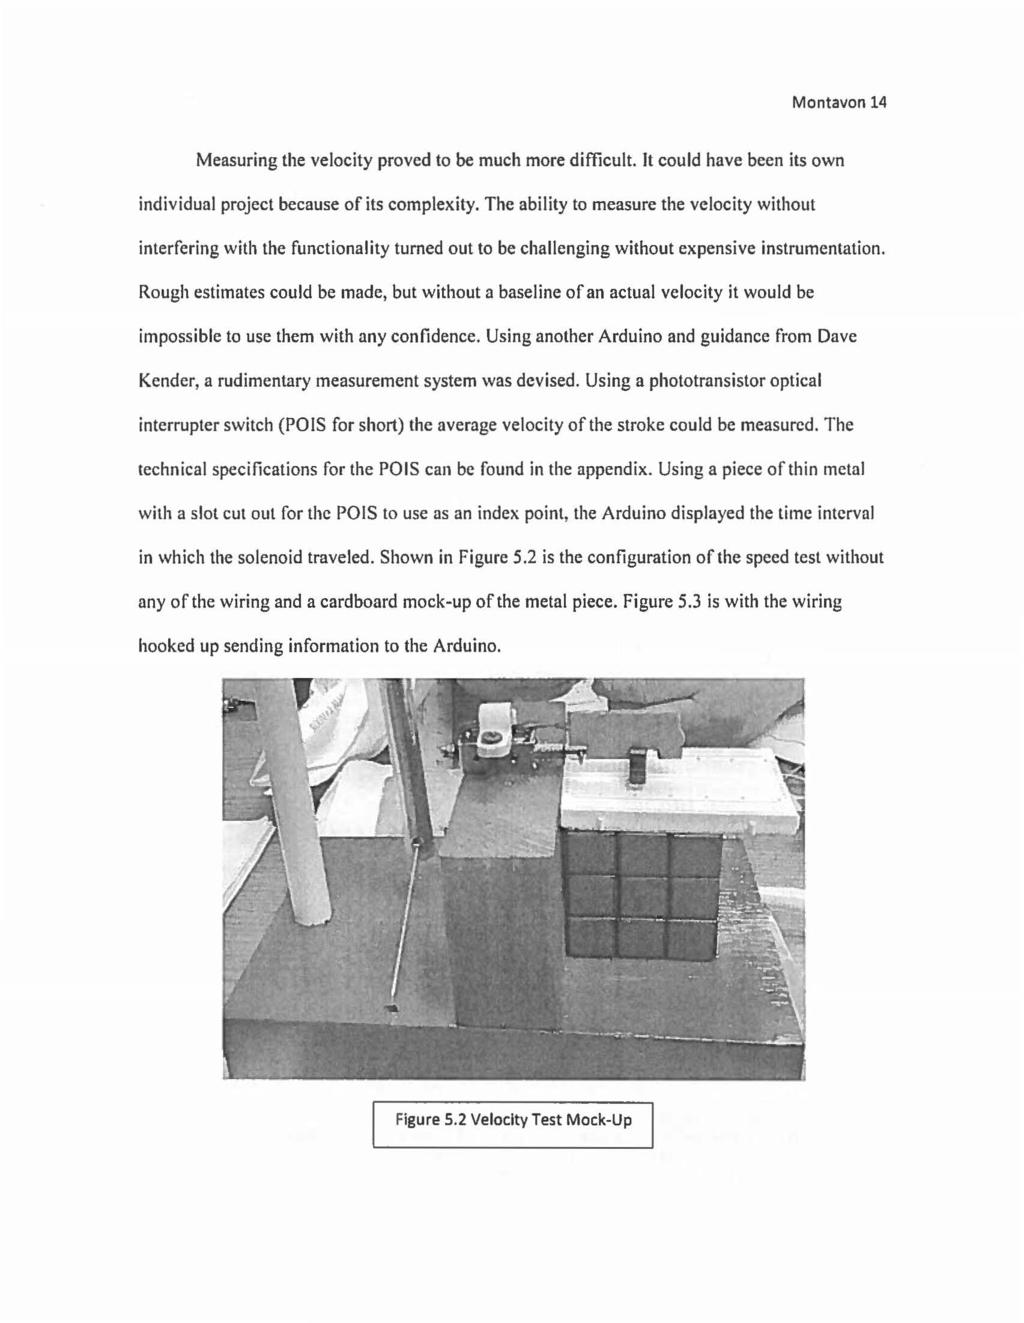 Automated Impact Device Pdf How To Set Up A Photo Interrupter Or Slotted Optical Switch On The Montavon 14 Measuring Velocity Proved Be Much More Difficult It Could Have Been